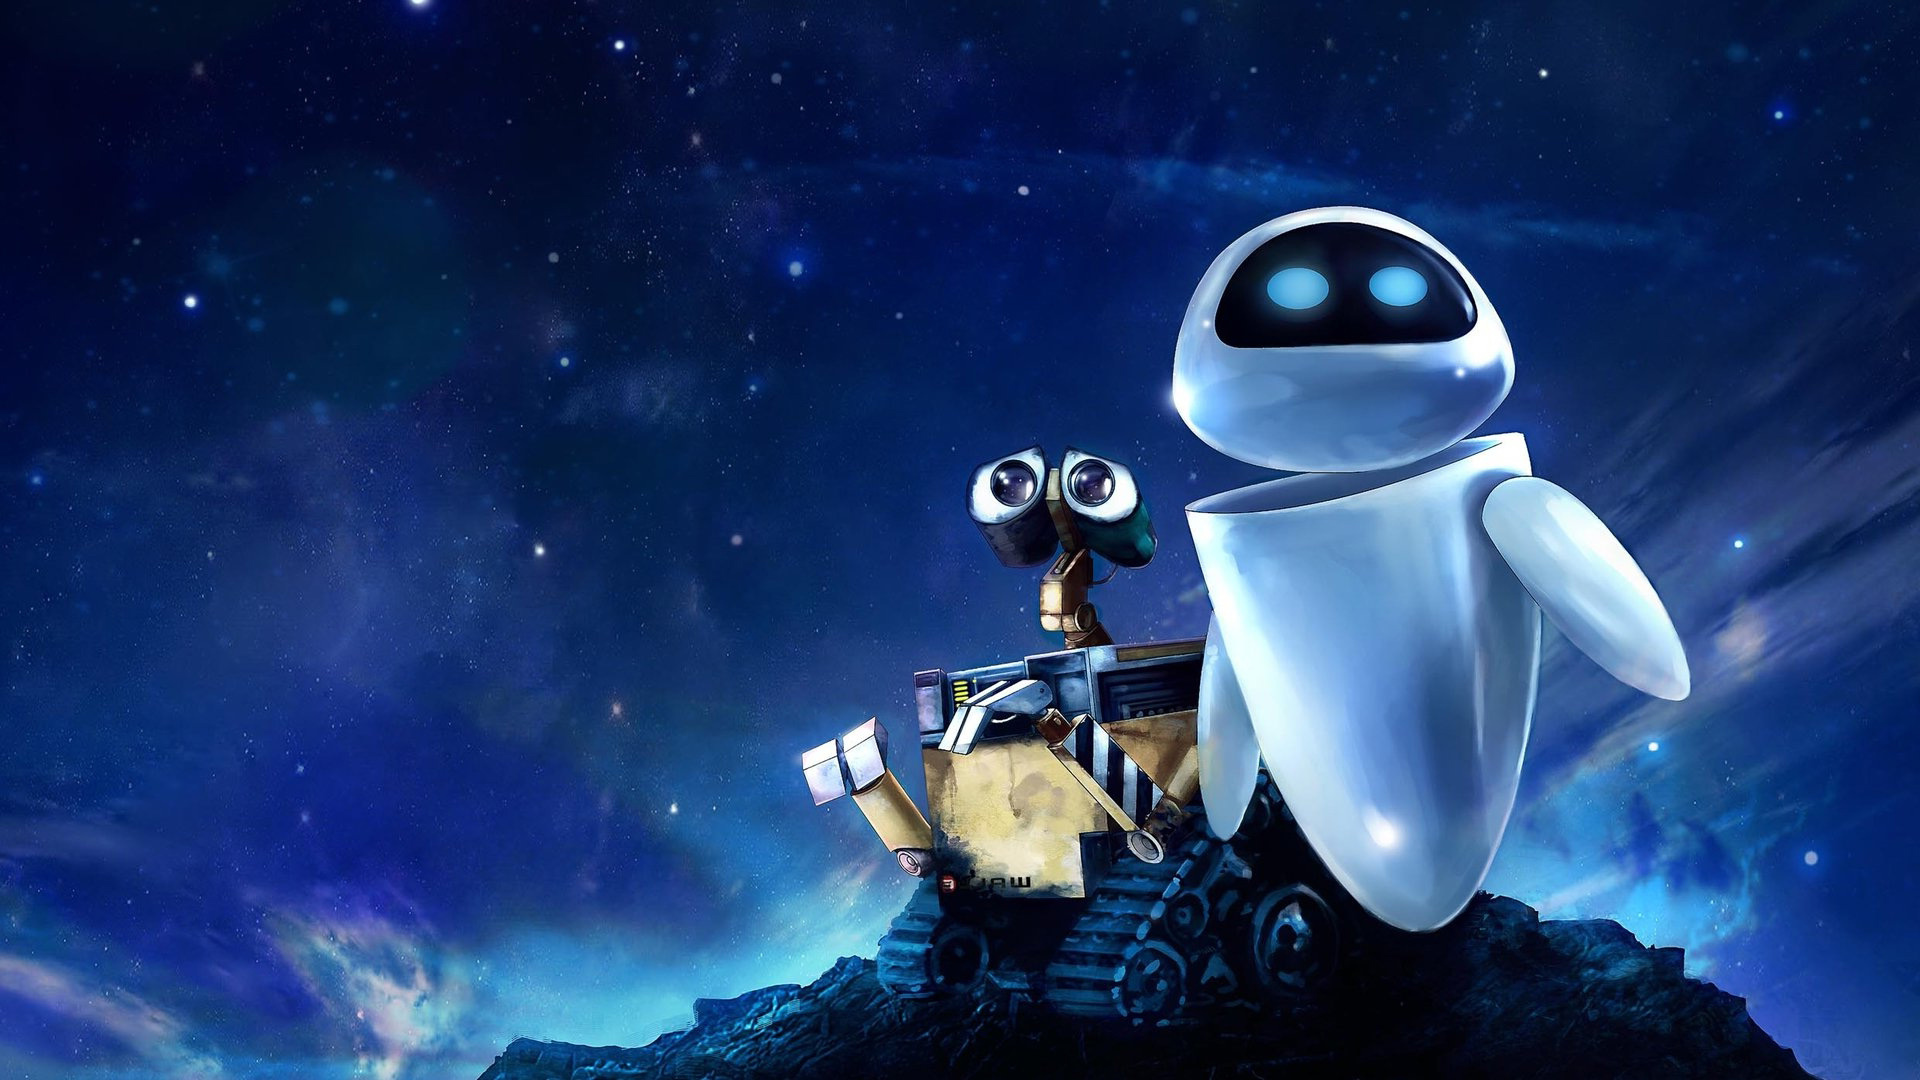 3d Wallpaper For Netbook Wall E Wallpapers And Images Wallpapers Pictures Photos